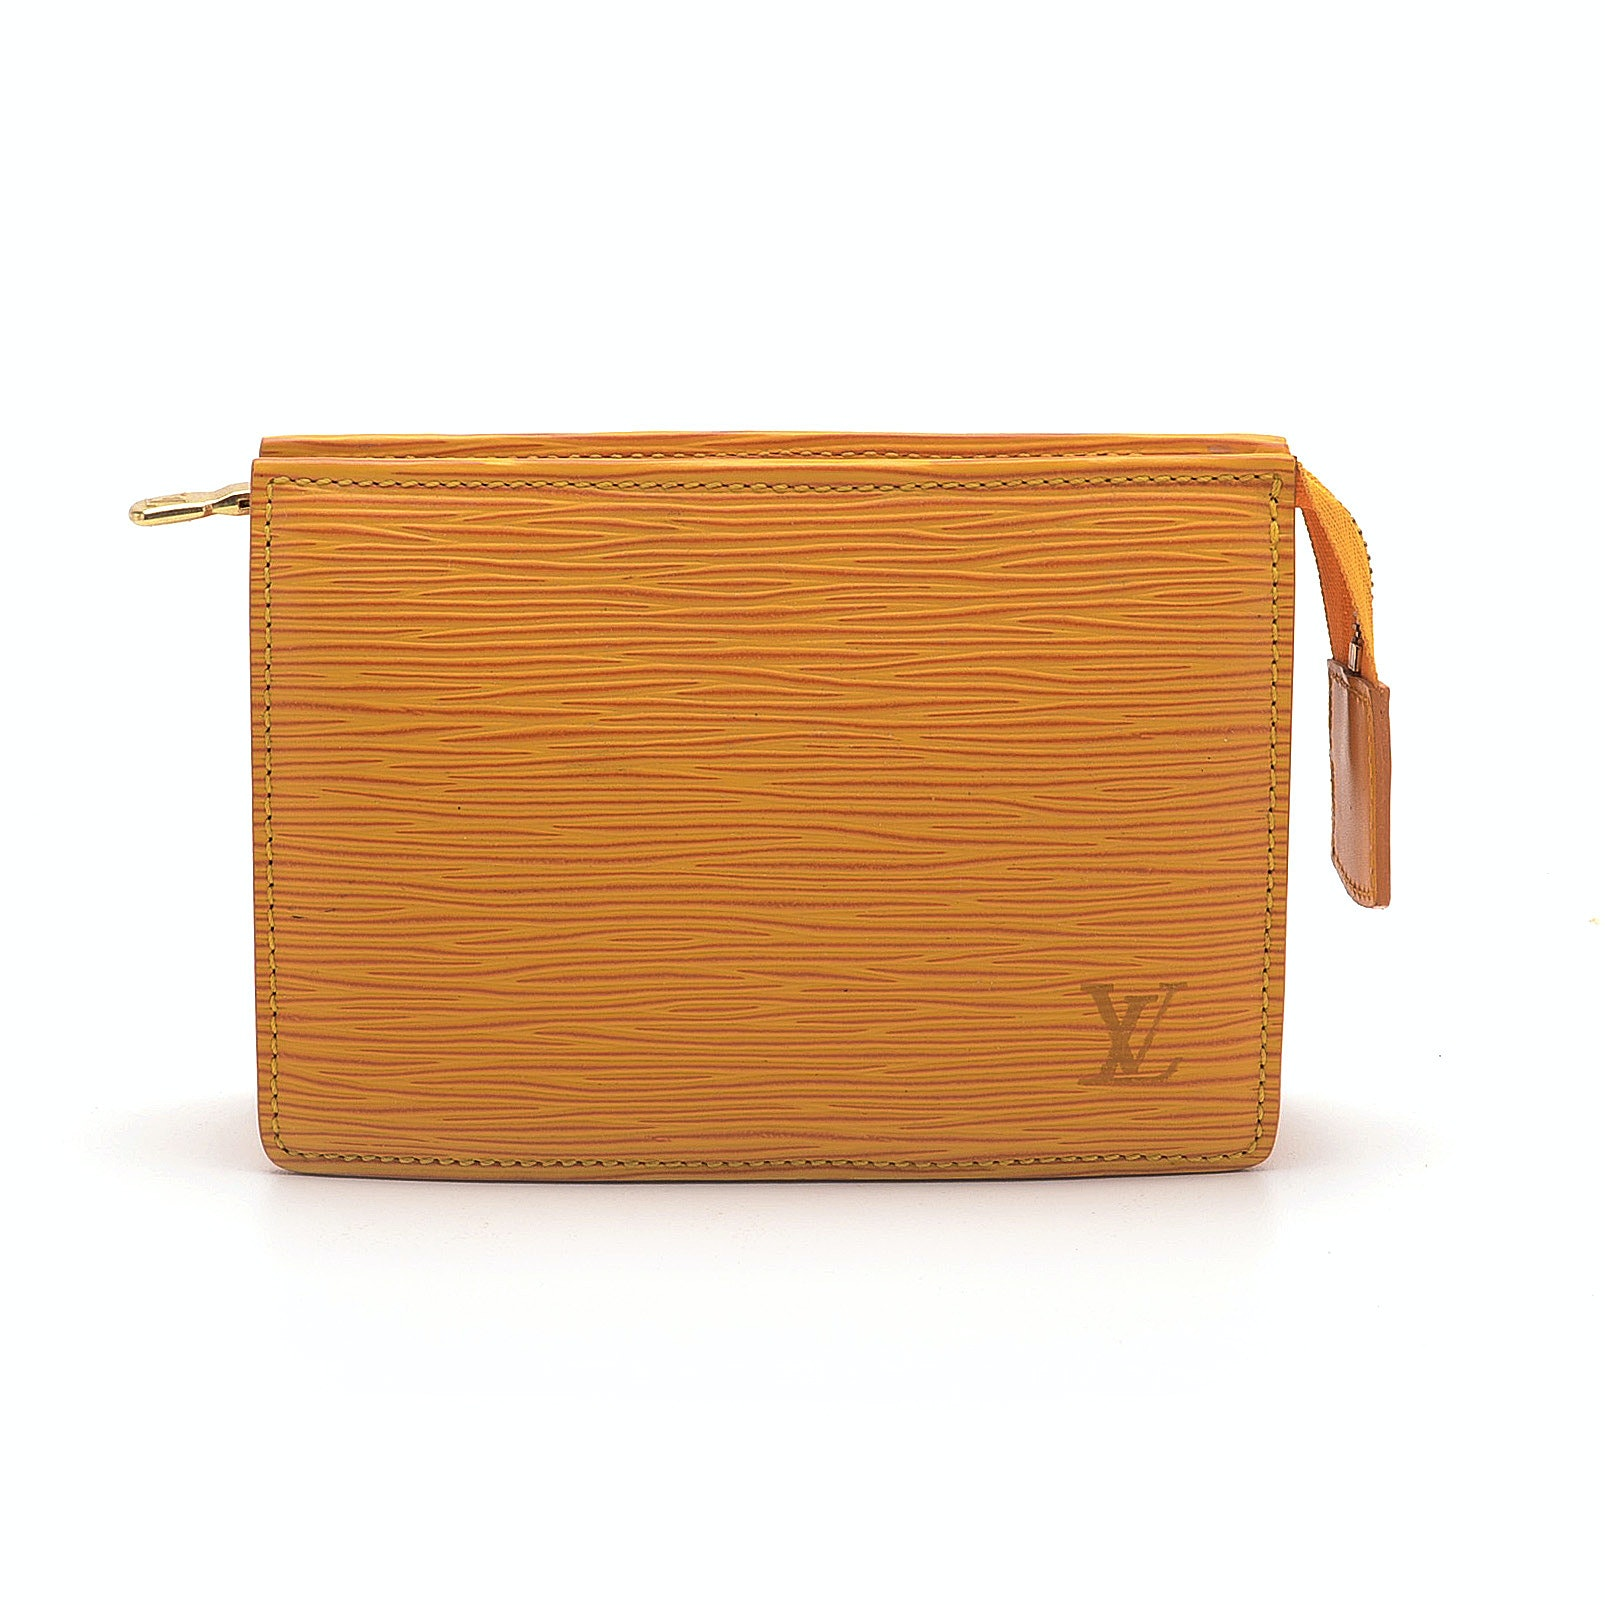 Louis Vuitton Tasili Yellow Epi Leather Small Cosmetic Bag